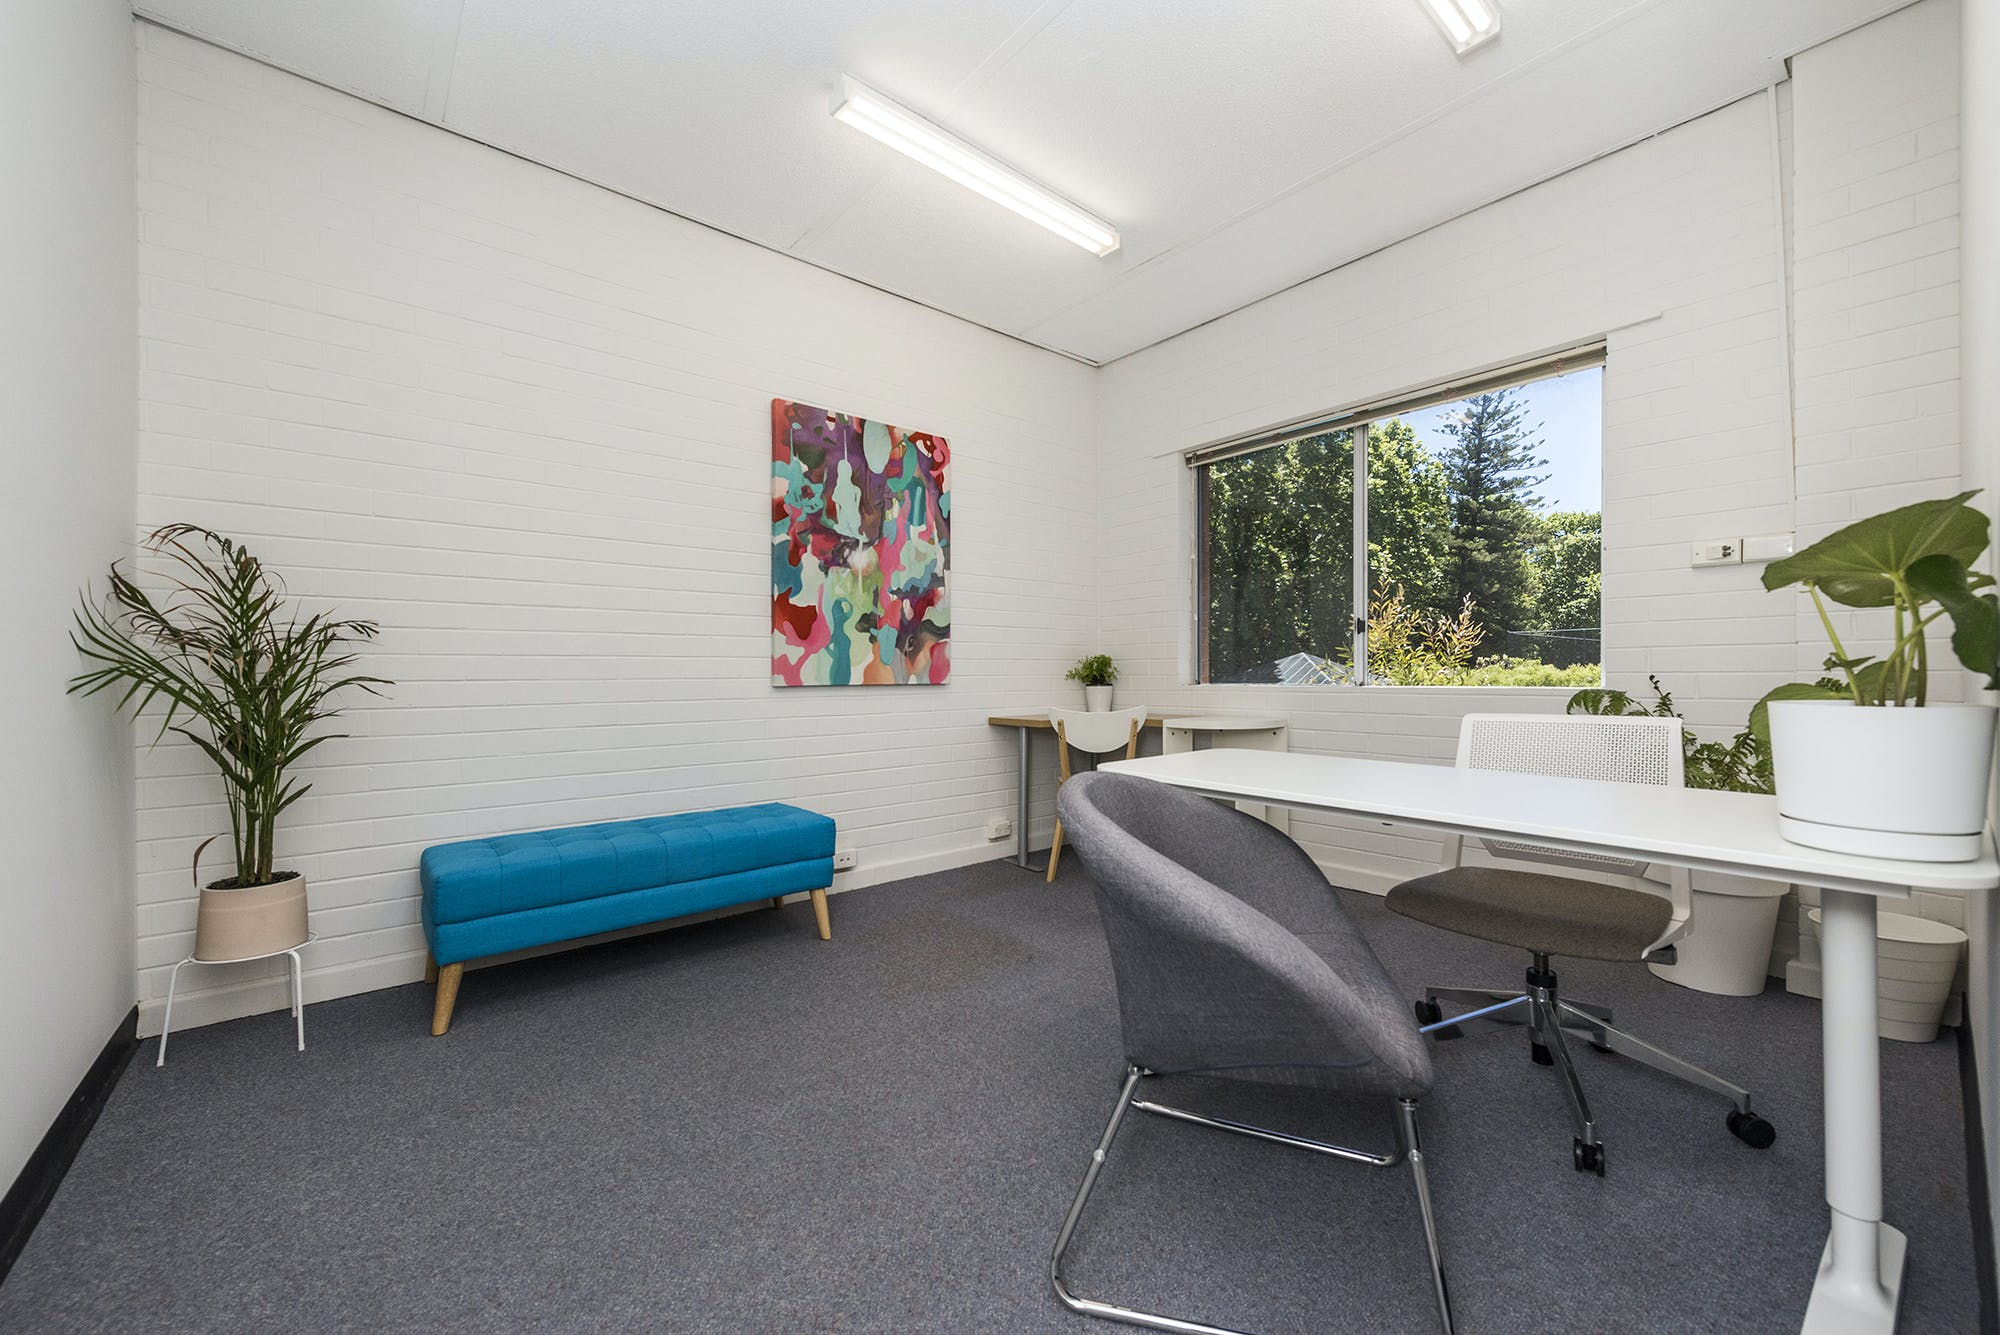 August Room, private office at Studio 64 - Workspace with Childcare, image 1